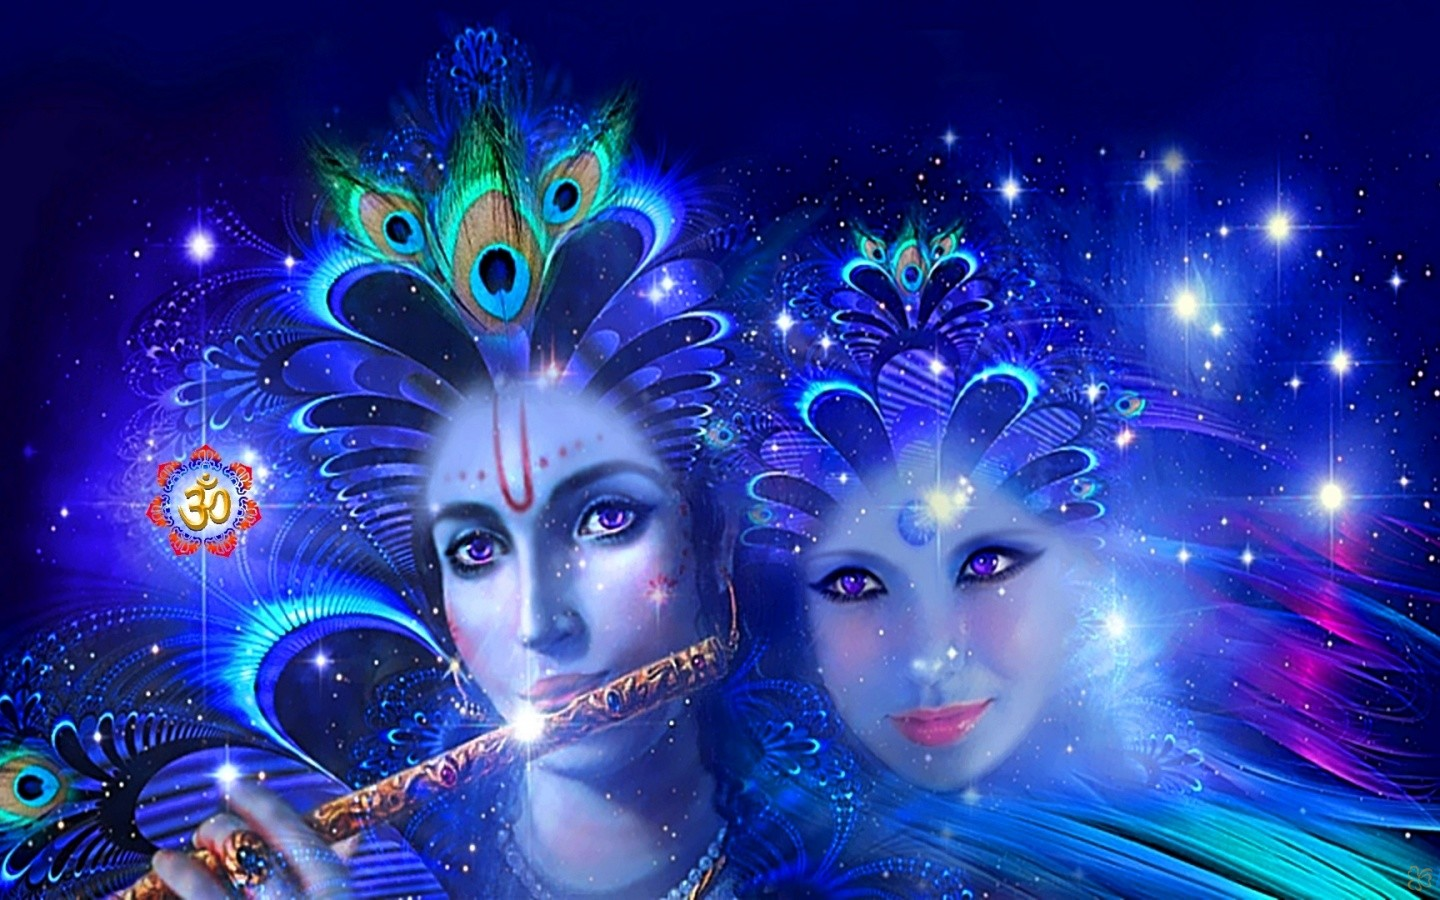 3D HD Radha Krishna Wallpaper: Desktop HD Wallpaper